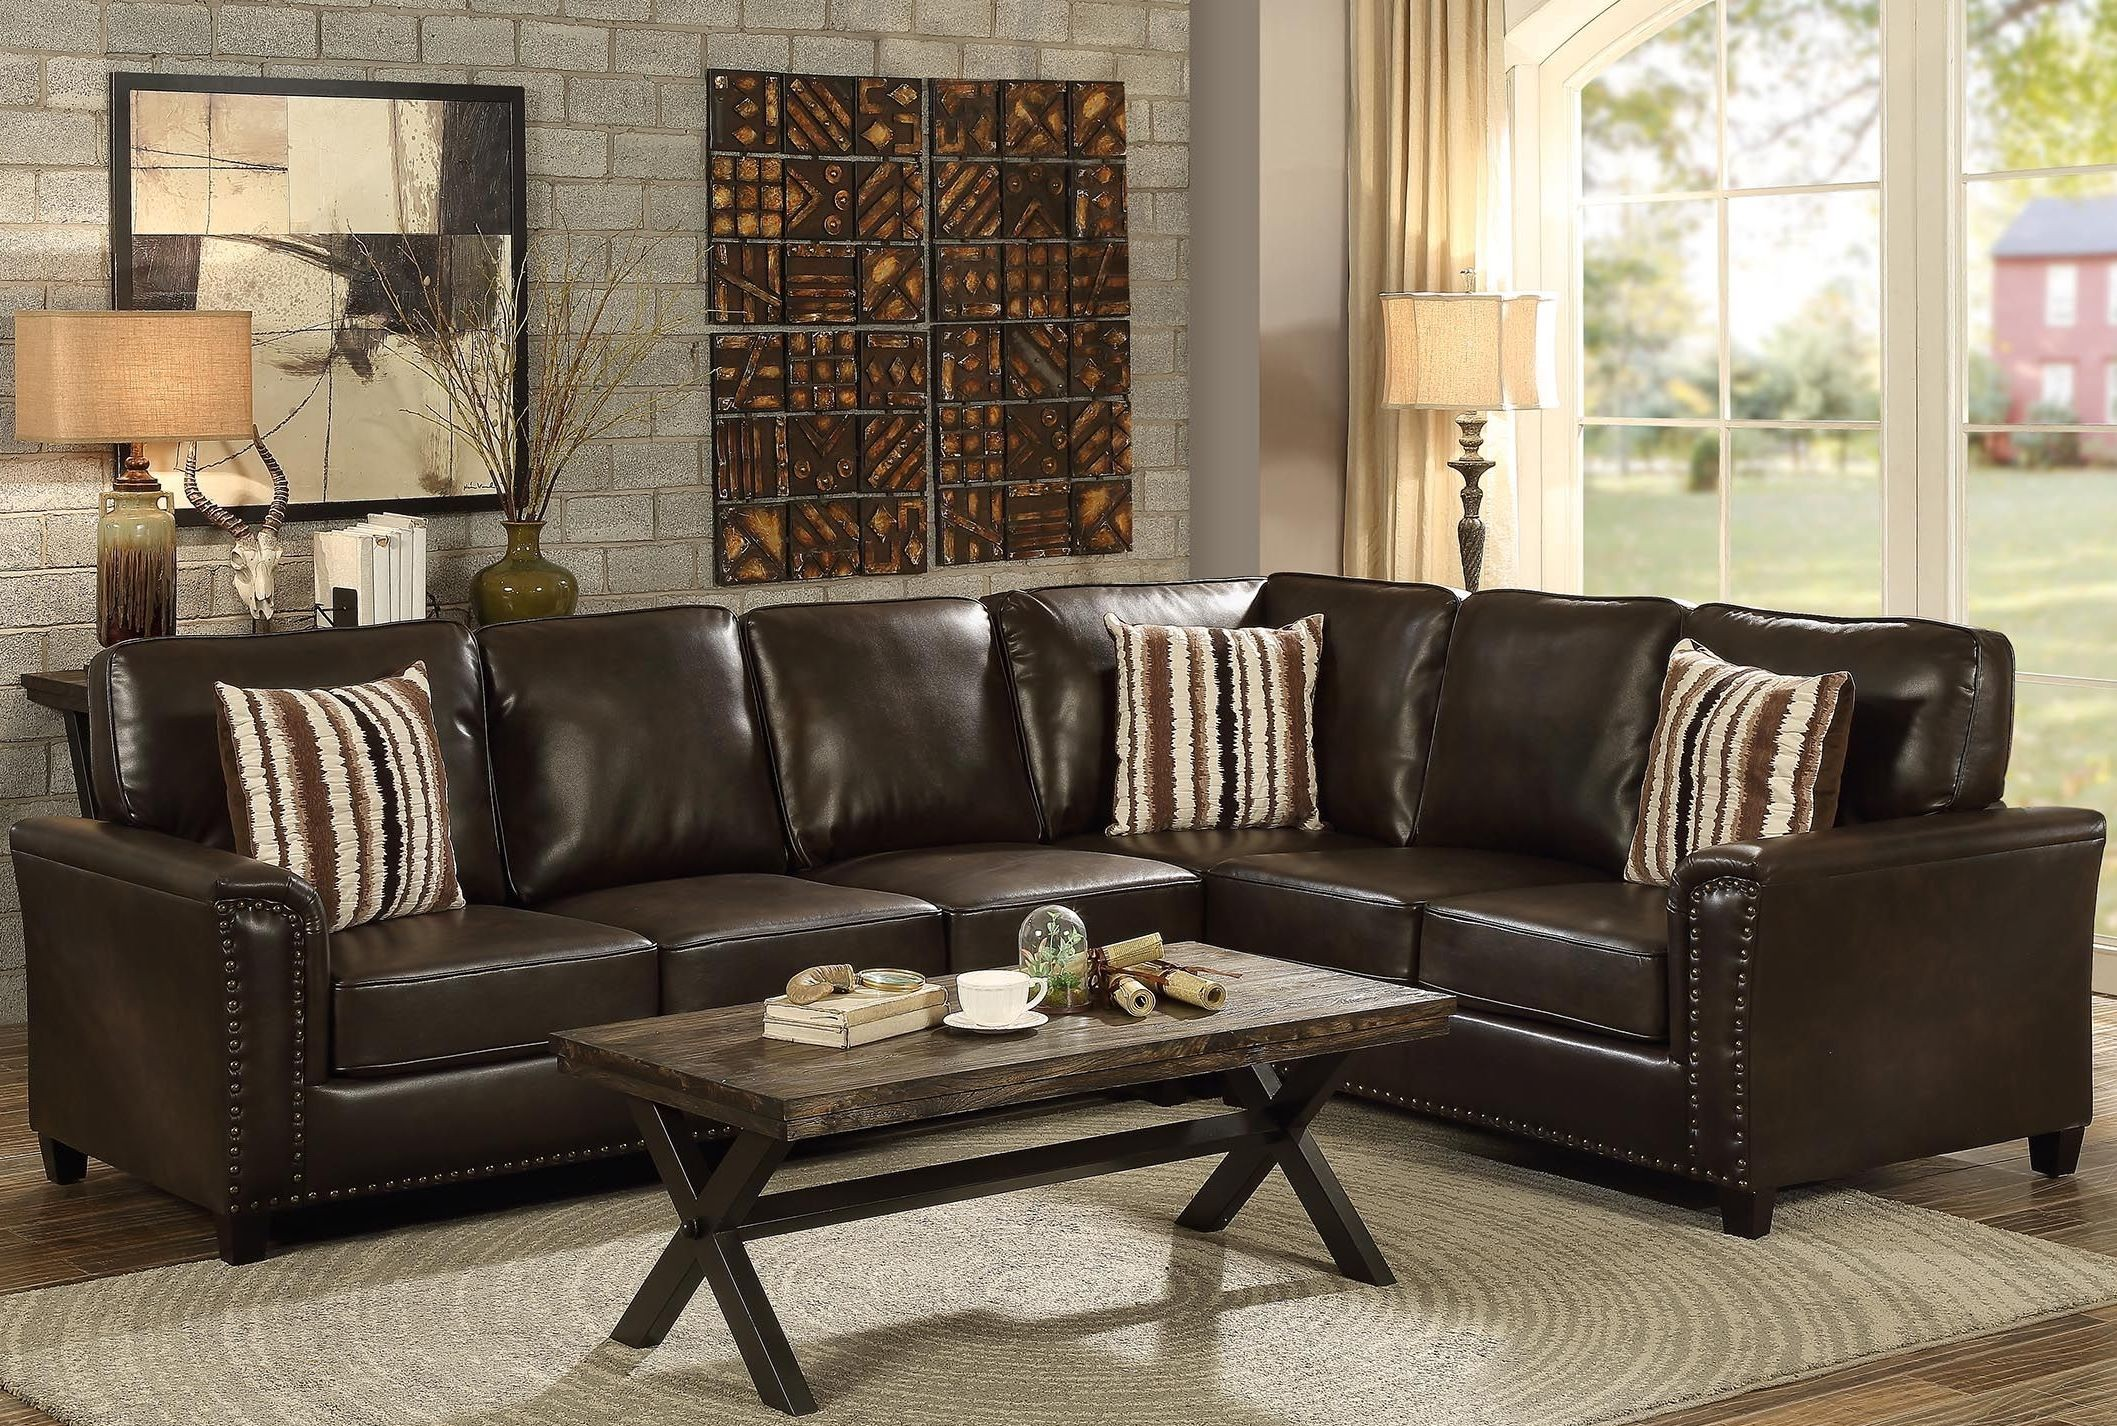 Larkny Dark Brown Sleeper Sectional from Coaster